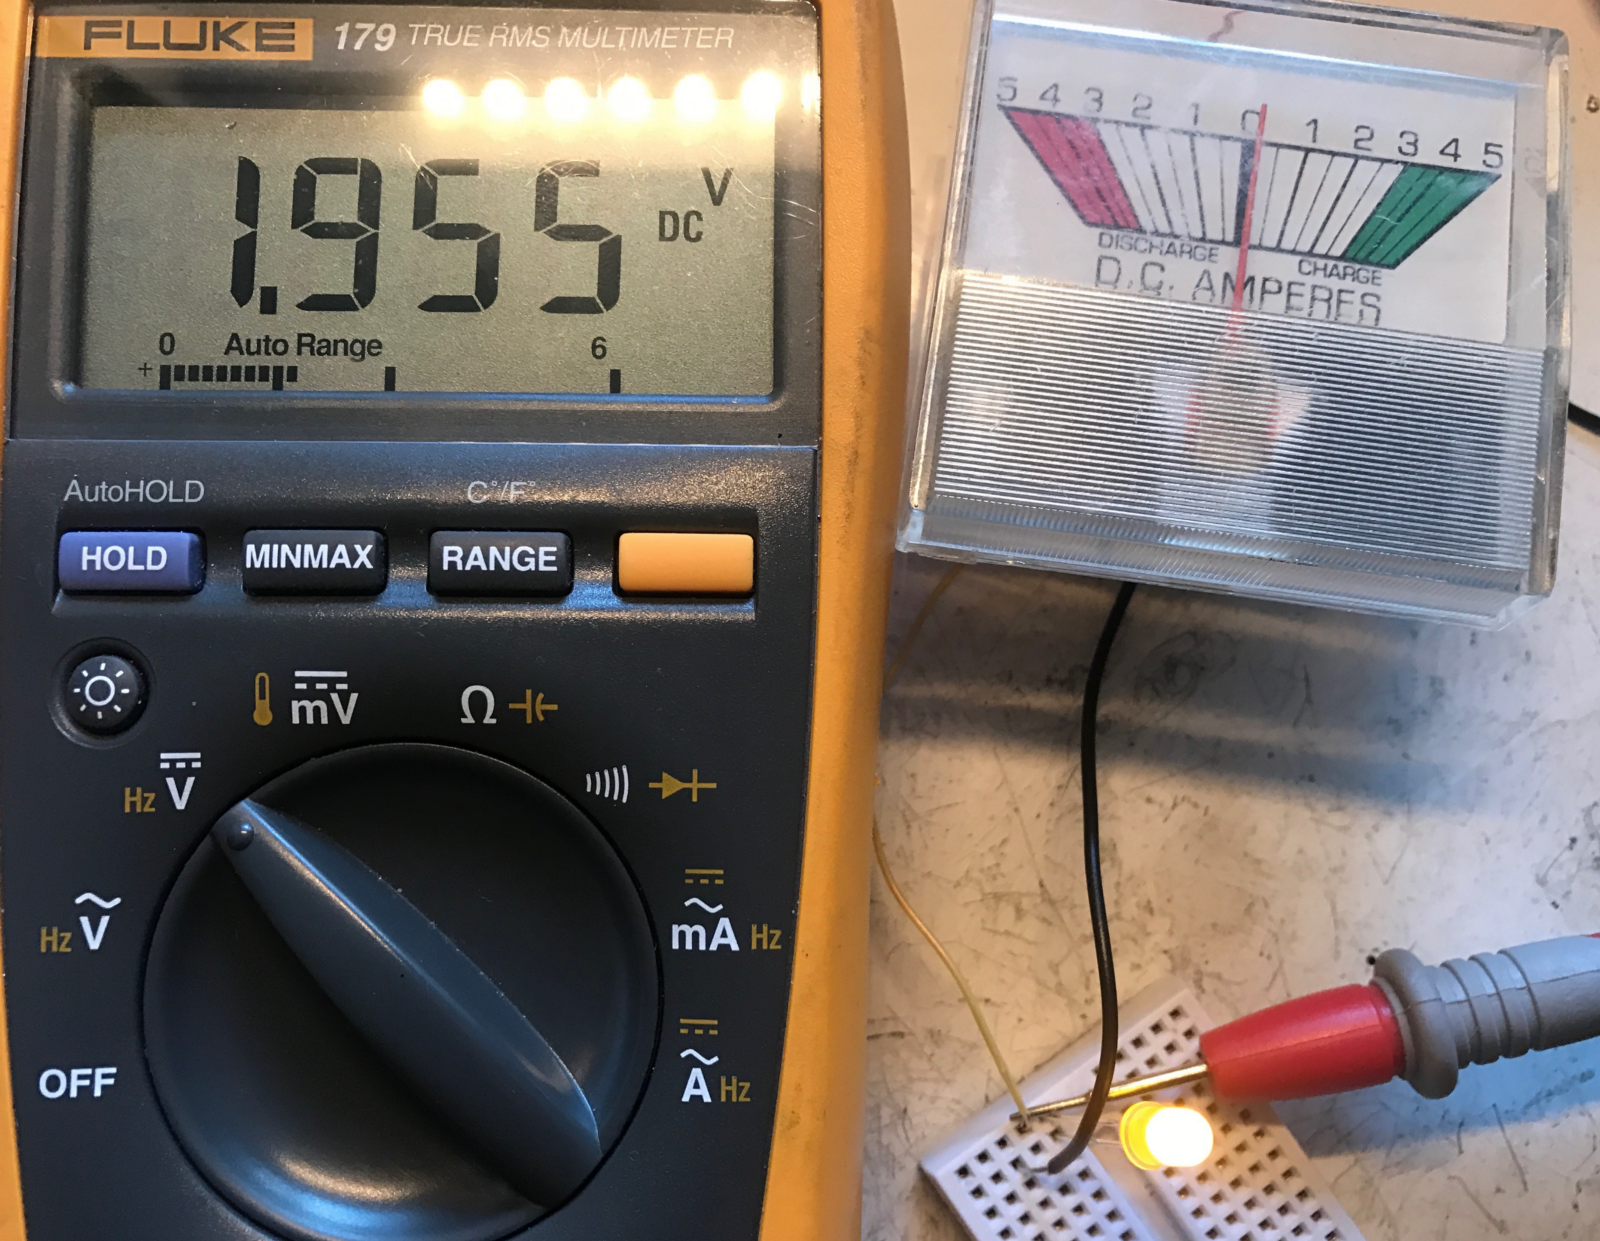 Voltage Regulators Revisted Lm317m 7812 Mcp170x Mic5219 And Icl7660 How To Build A Simple Current Limiting Bench Power Supply Tl431 Shunt Regulator As Limiter